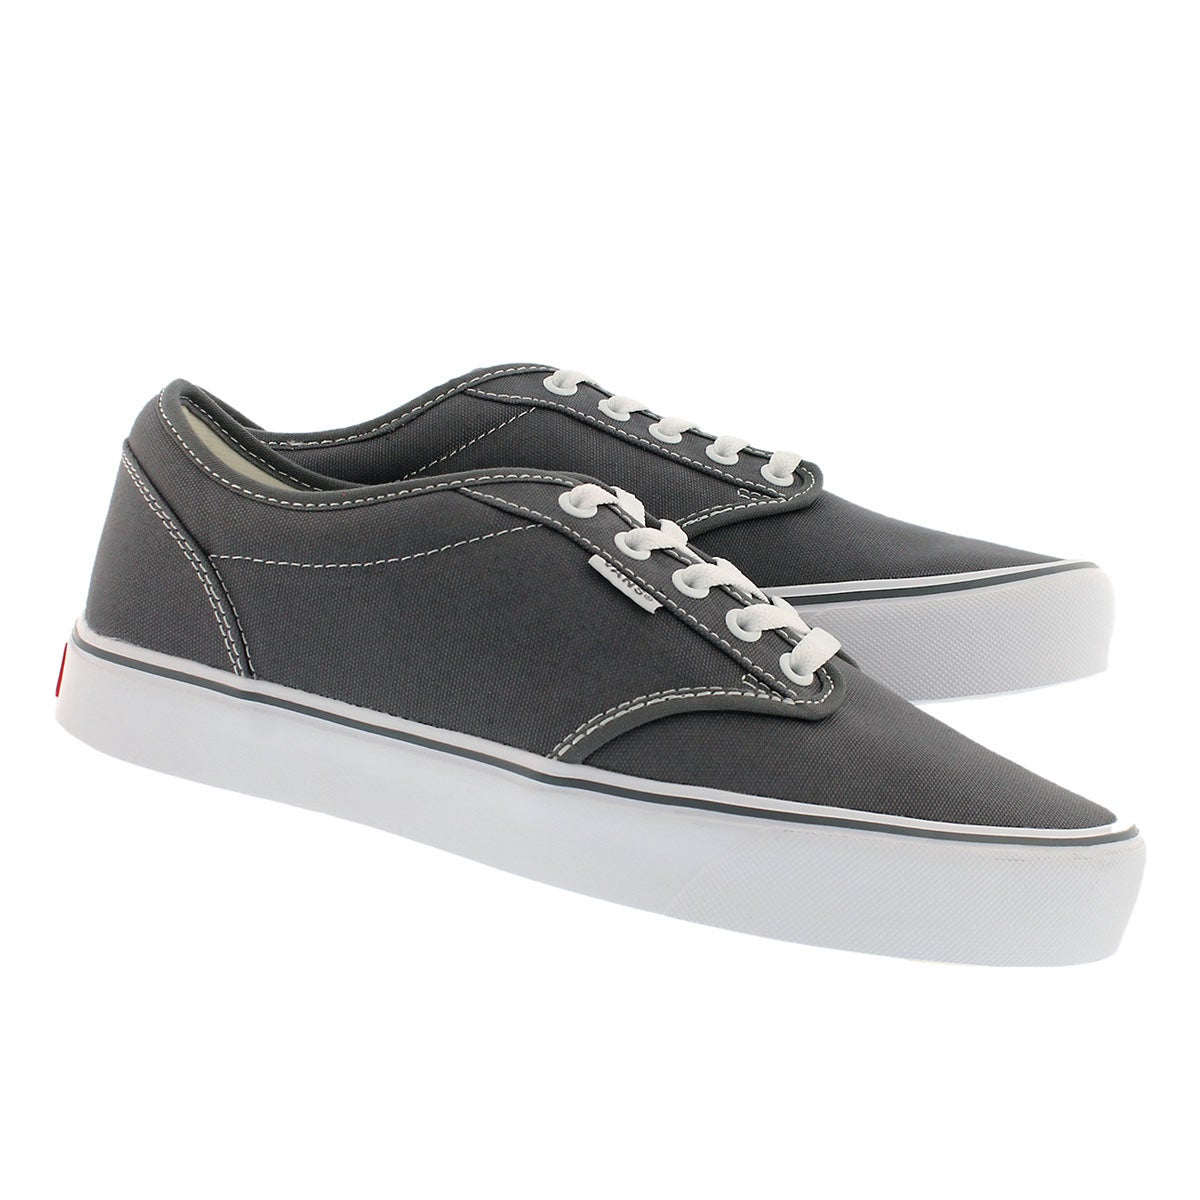 Mns Atwood Lite pewter lace up sneaker